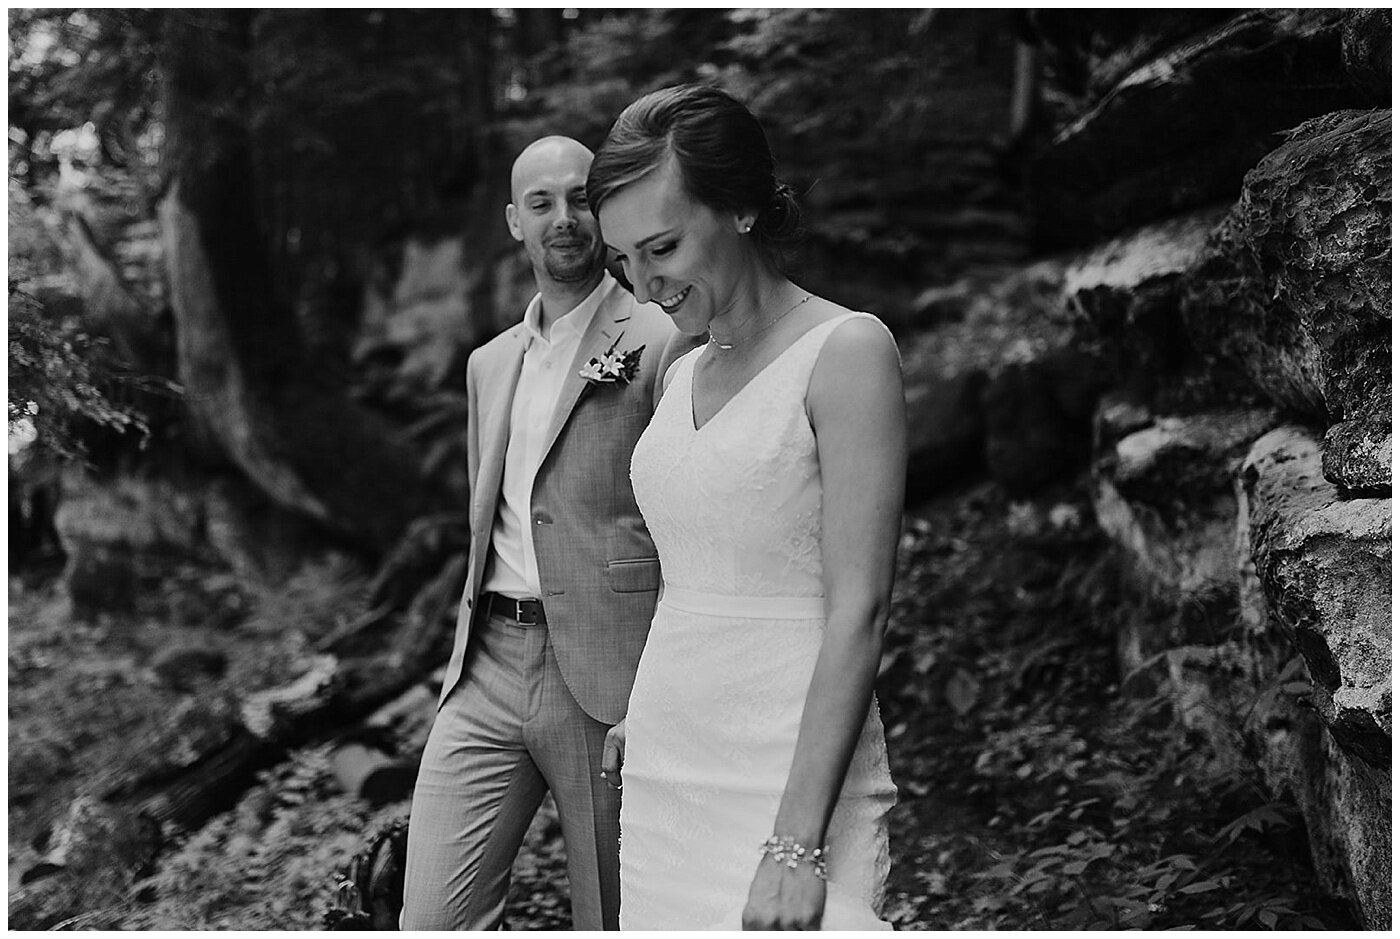 Matt+Katie_WEDDING_MJPHOTO2019-175.jpg